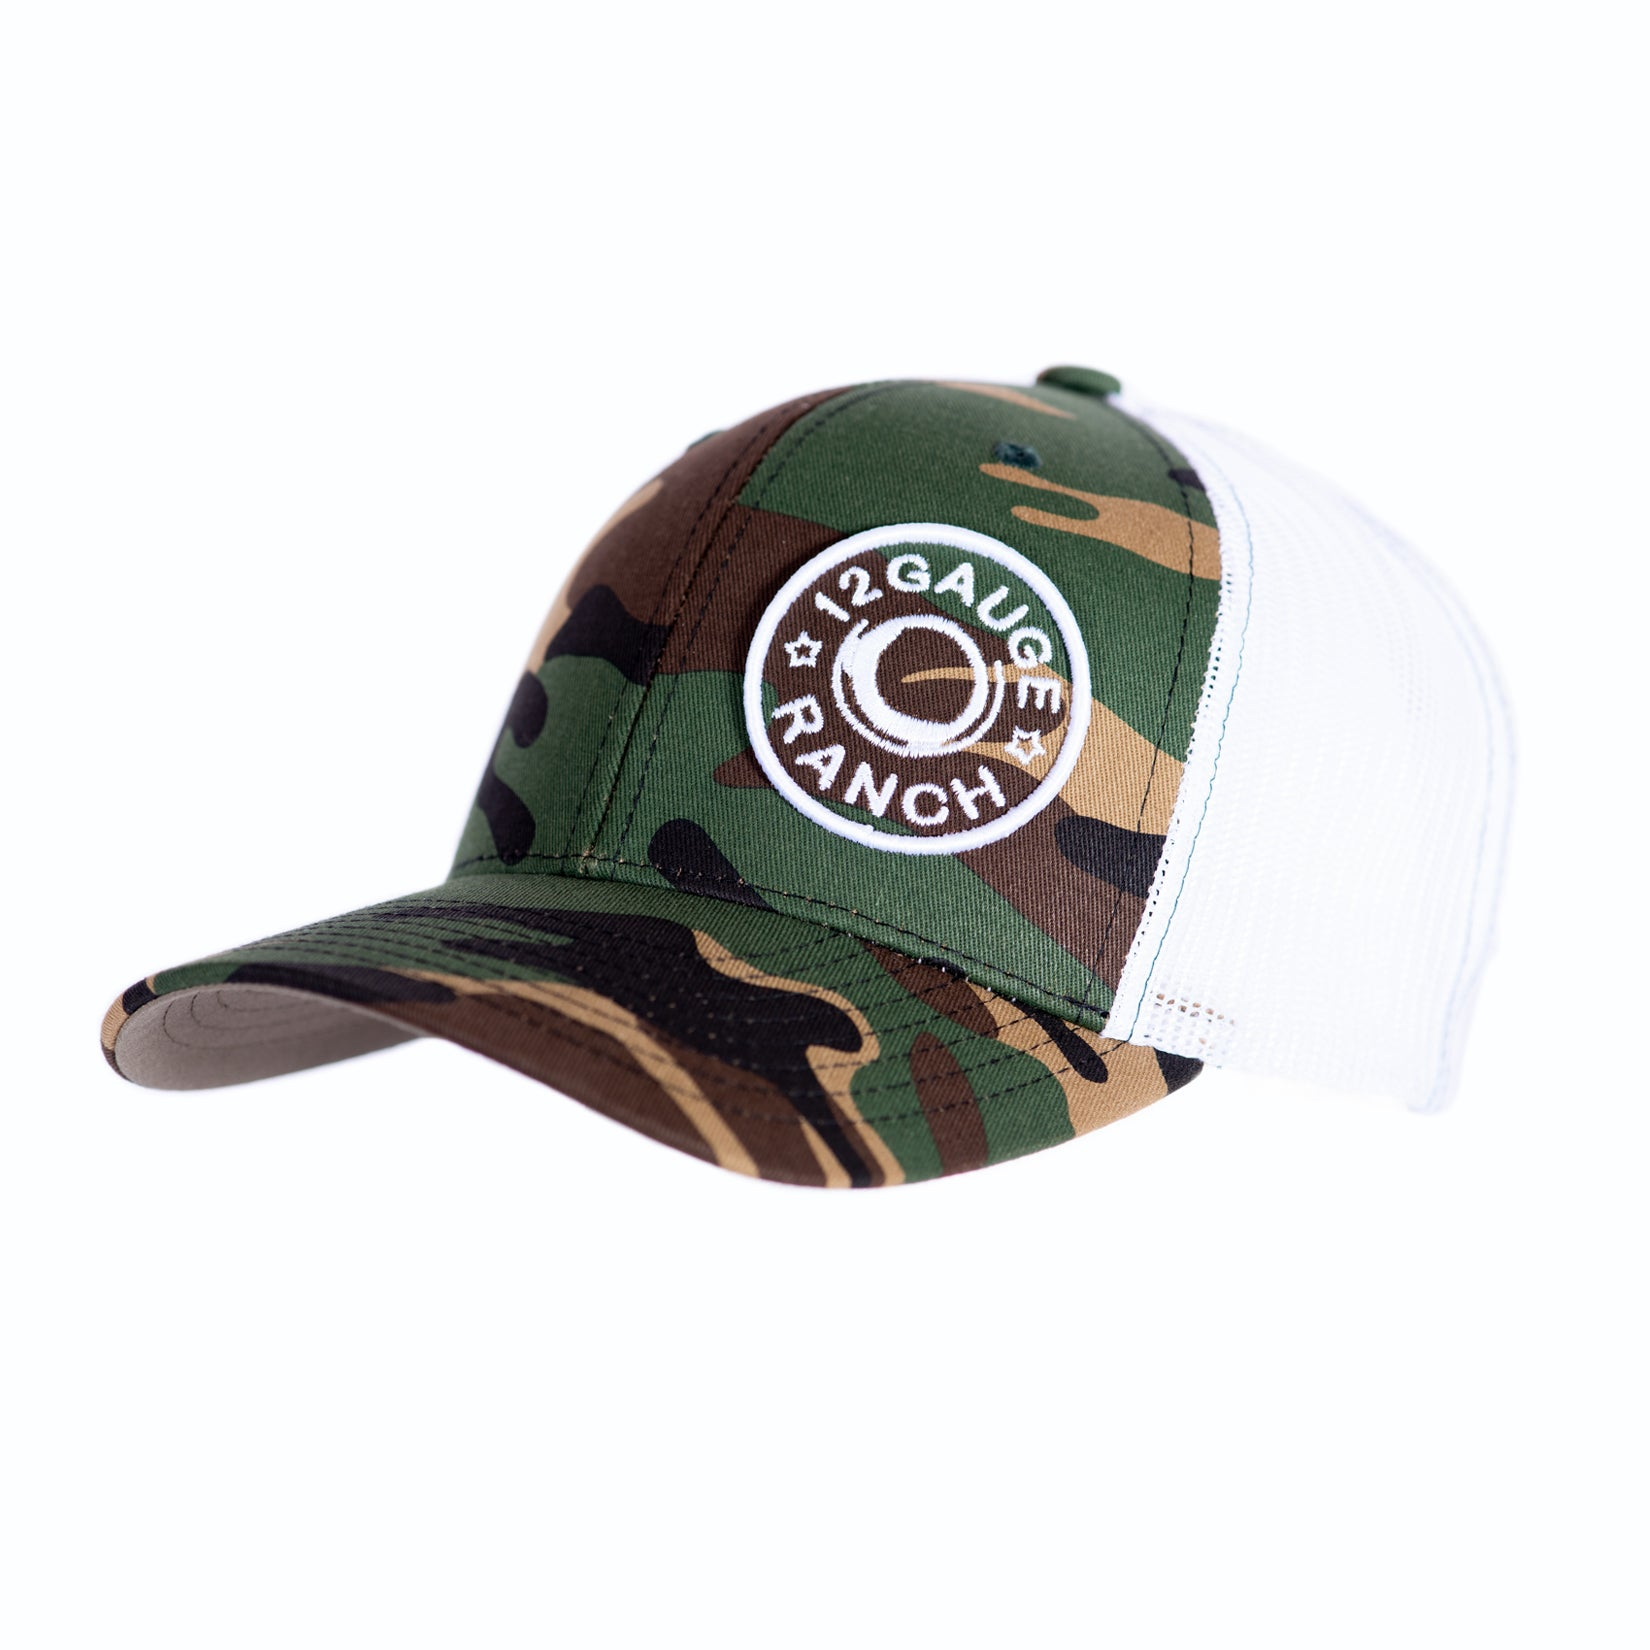 Camo and White 12 Gauge Bullet Logo Baseball Hat, Hats, 12 Gauge Ranch, 12 Gauge Ranch 12 Gauge Ranch